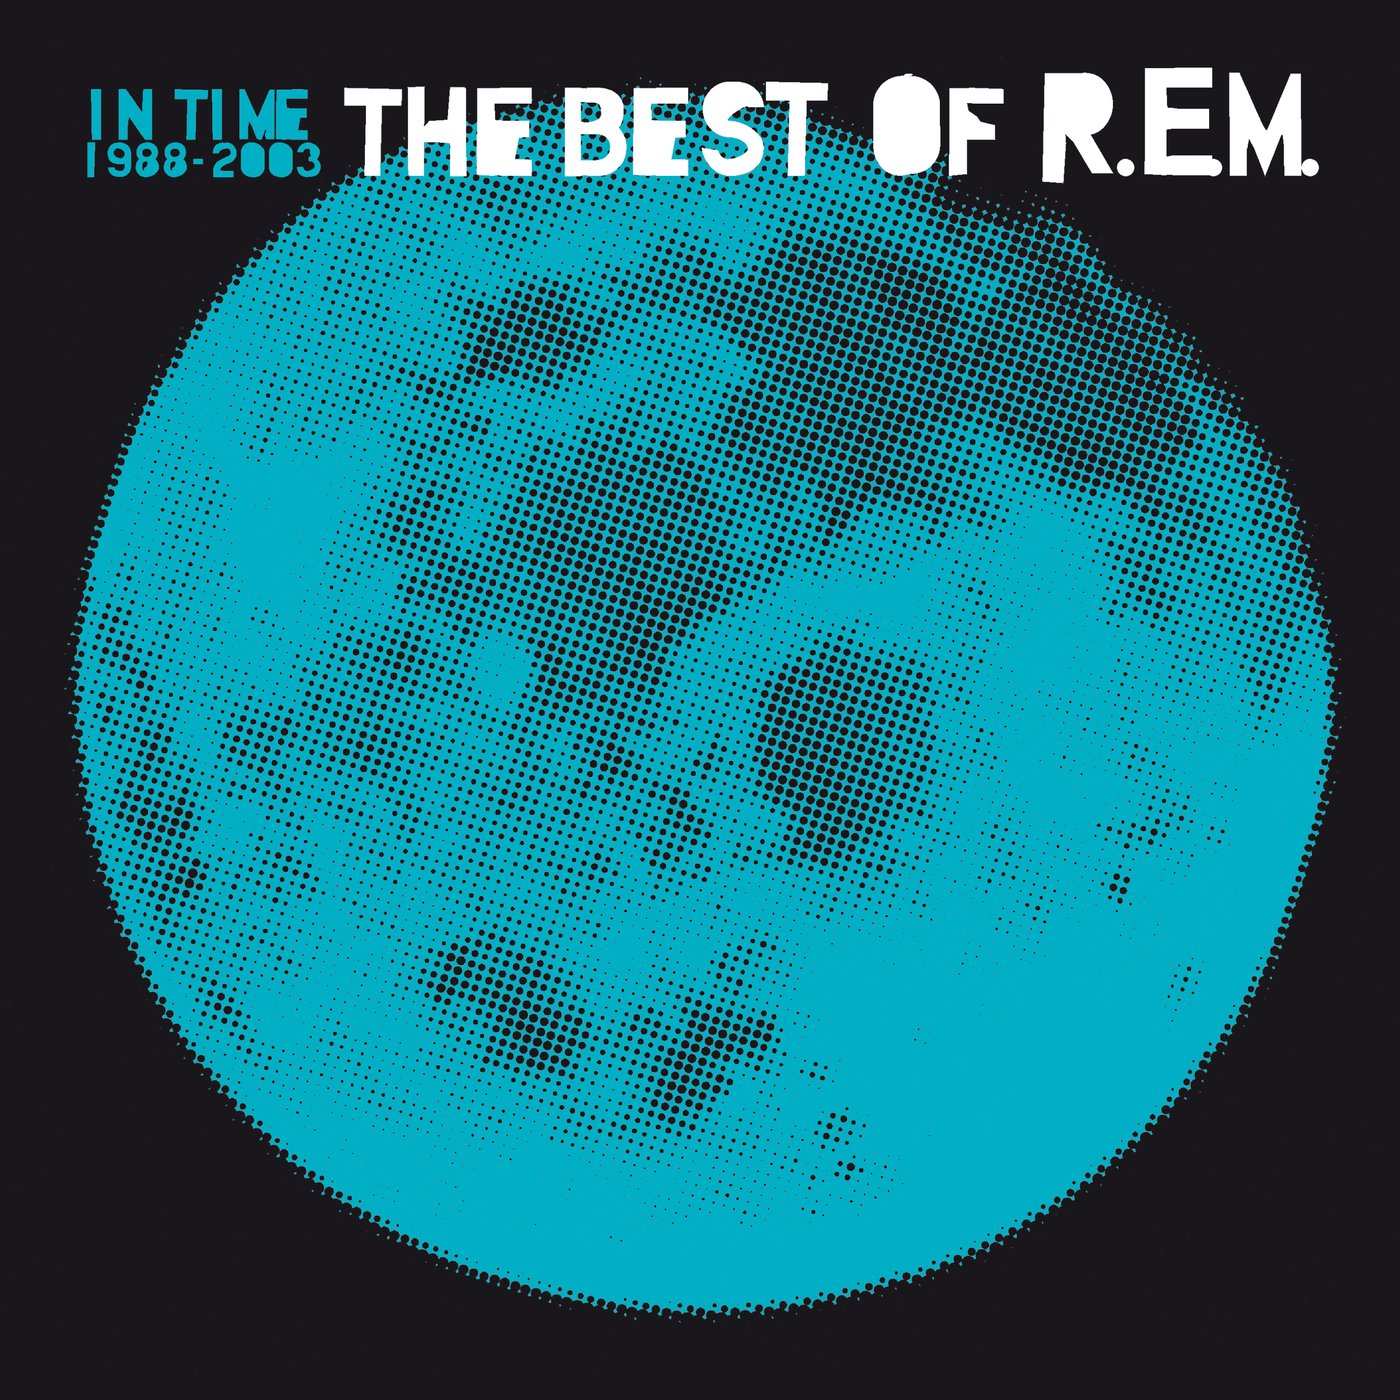 CD Shop - R.E.M. IN TIME: THE BEST OF R.E.M. 1988-2003